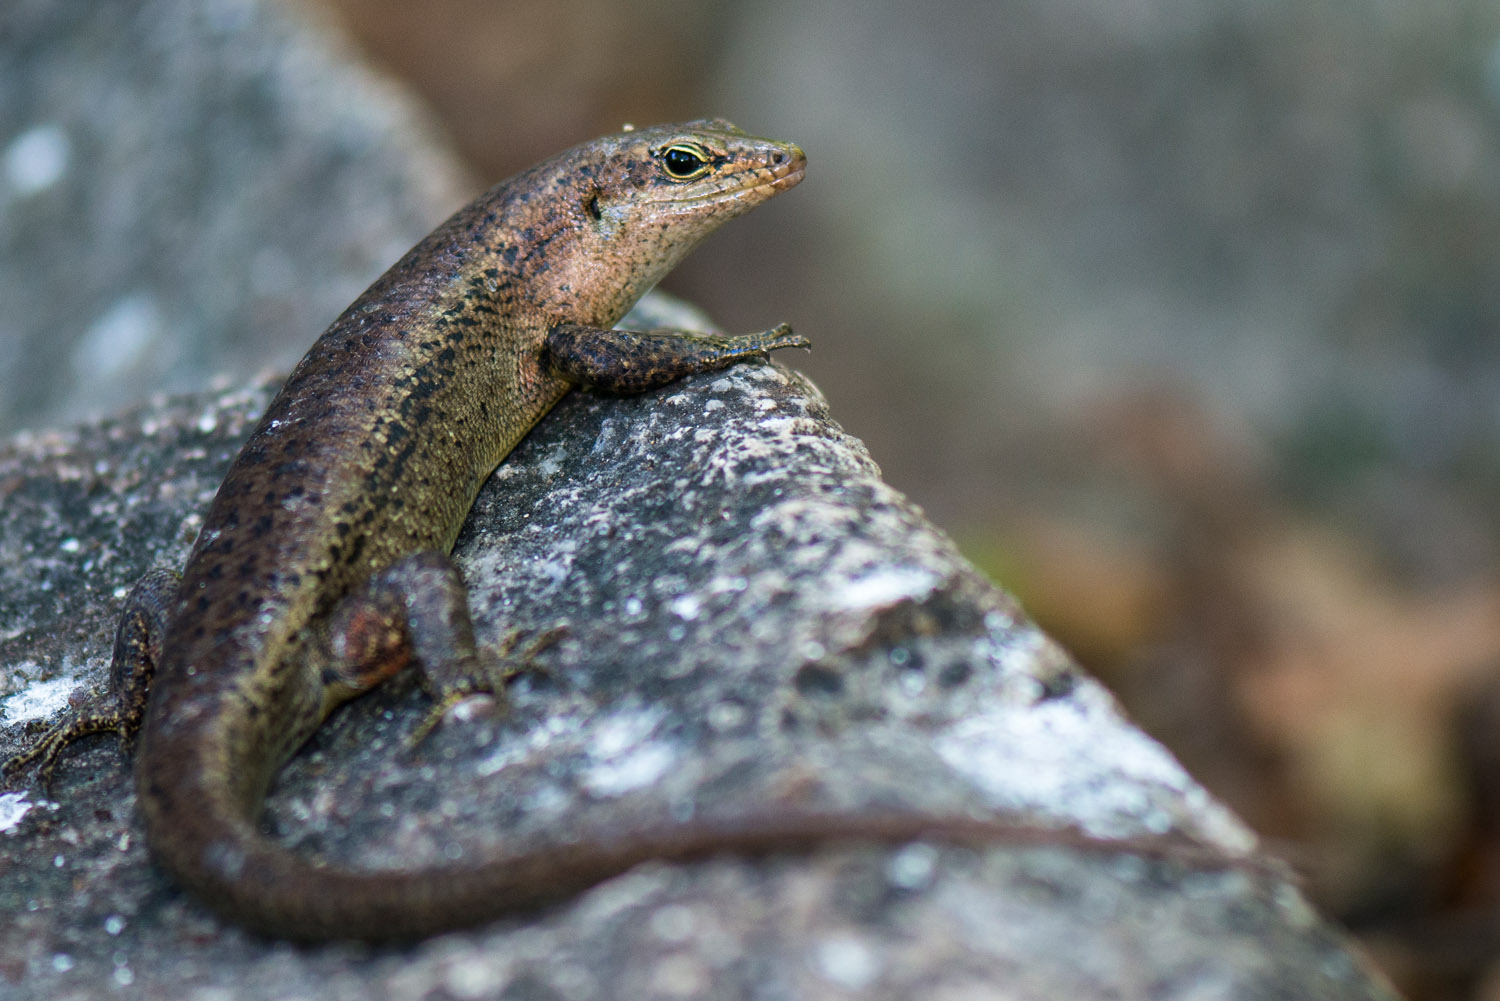 Wright's skink, Cousin Island Special Reserve, Seychelles